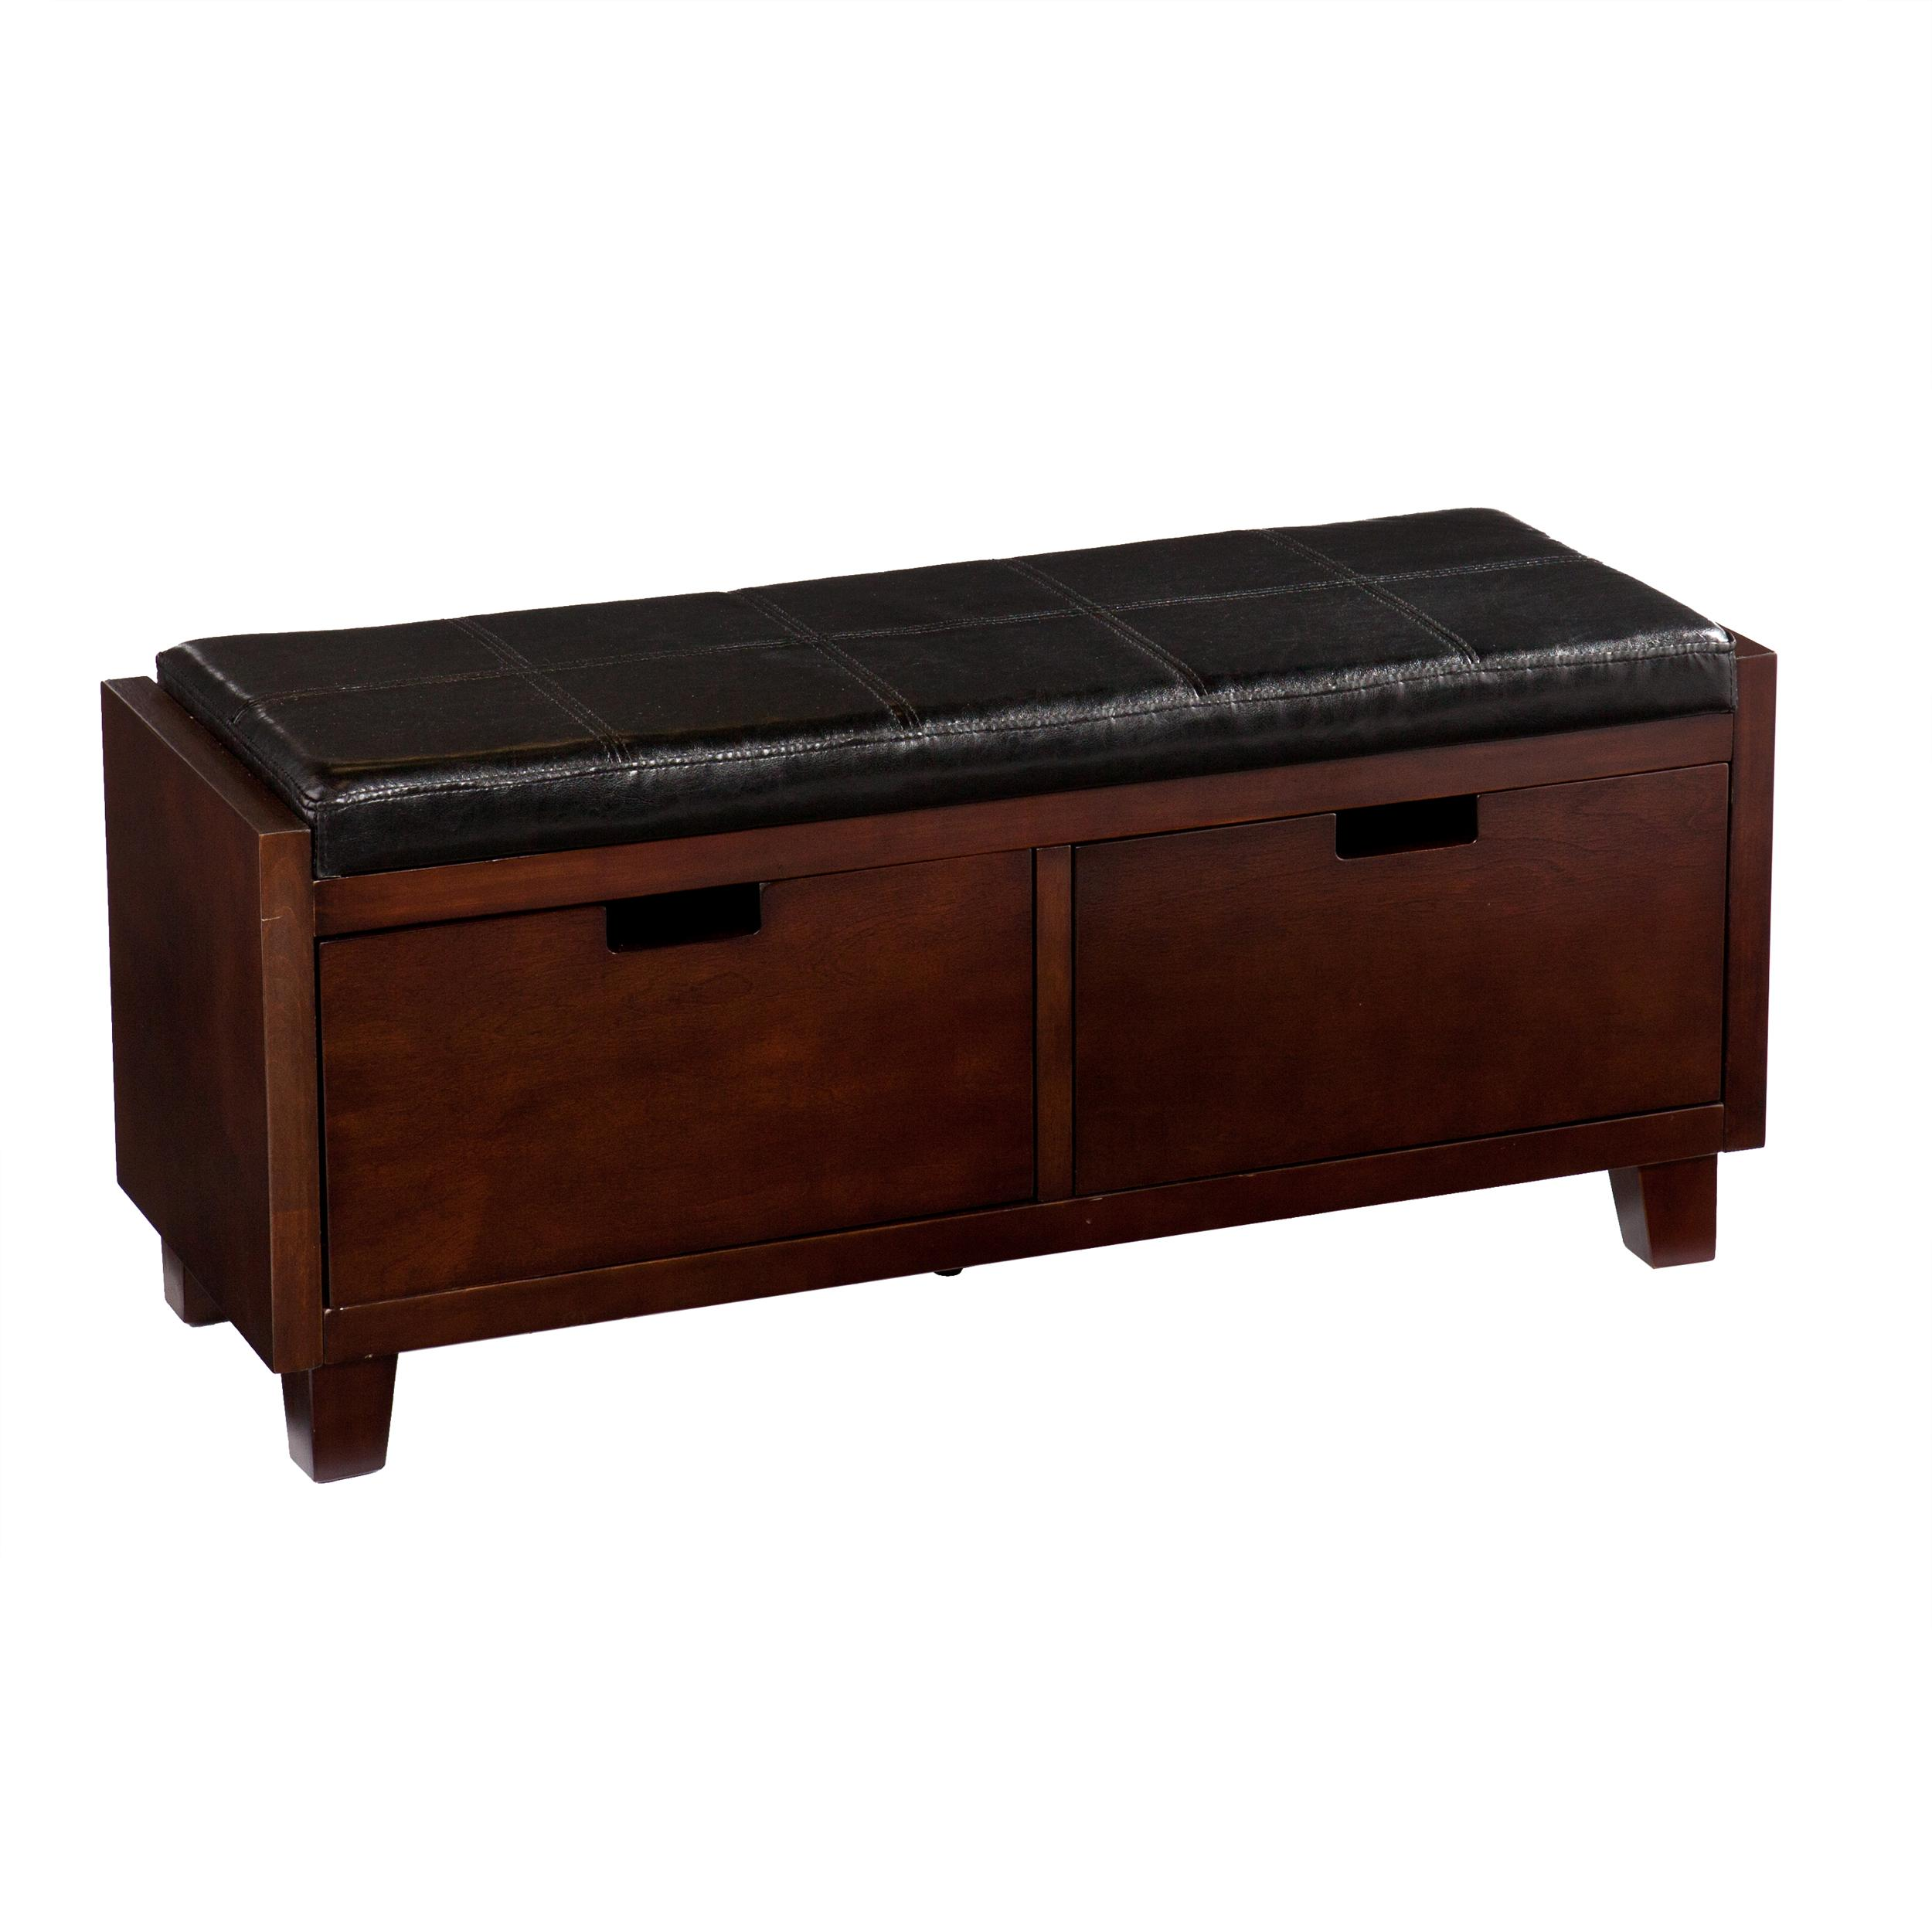 Sei flynn 2 drawer storage bench kitchen dining Storage benches